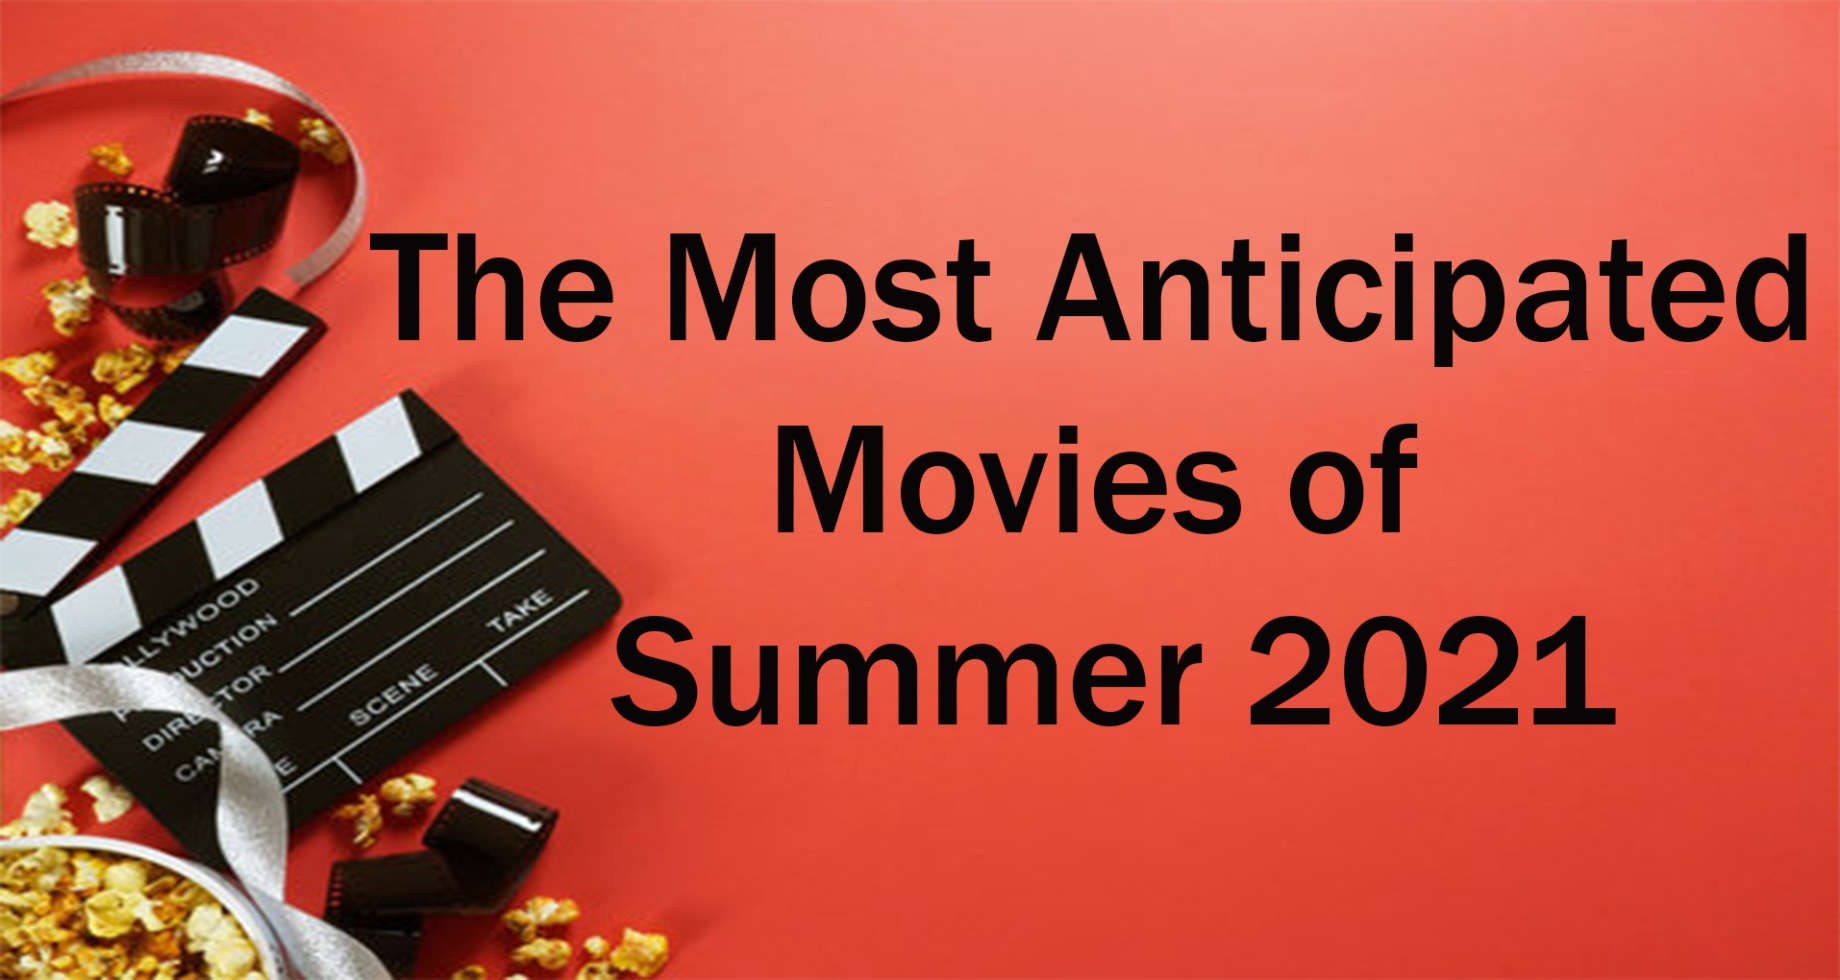 The Most Anticipated Movies of Summer 2021